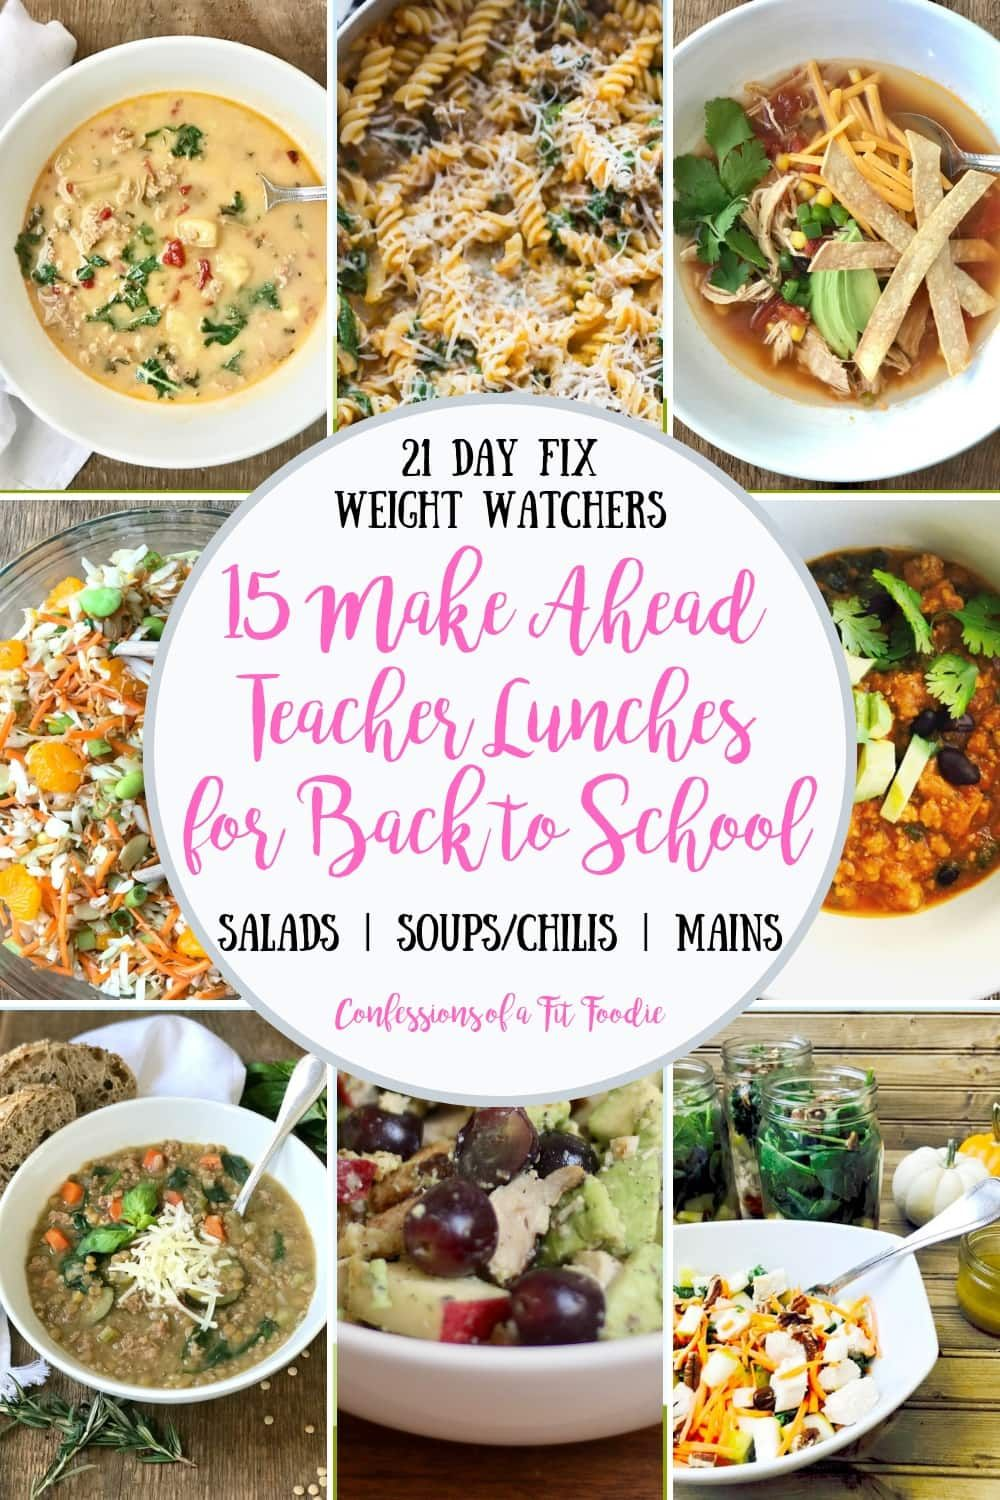 Https Confessionsofafitfoodie Com Wp Content Uploads 2019 08 Make Ahead Teacher Lunches Jpg In 2020 Make Ahead Lunches Quick Lunches Lunch